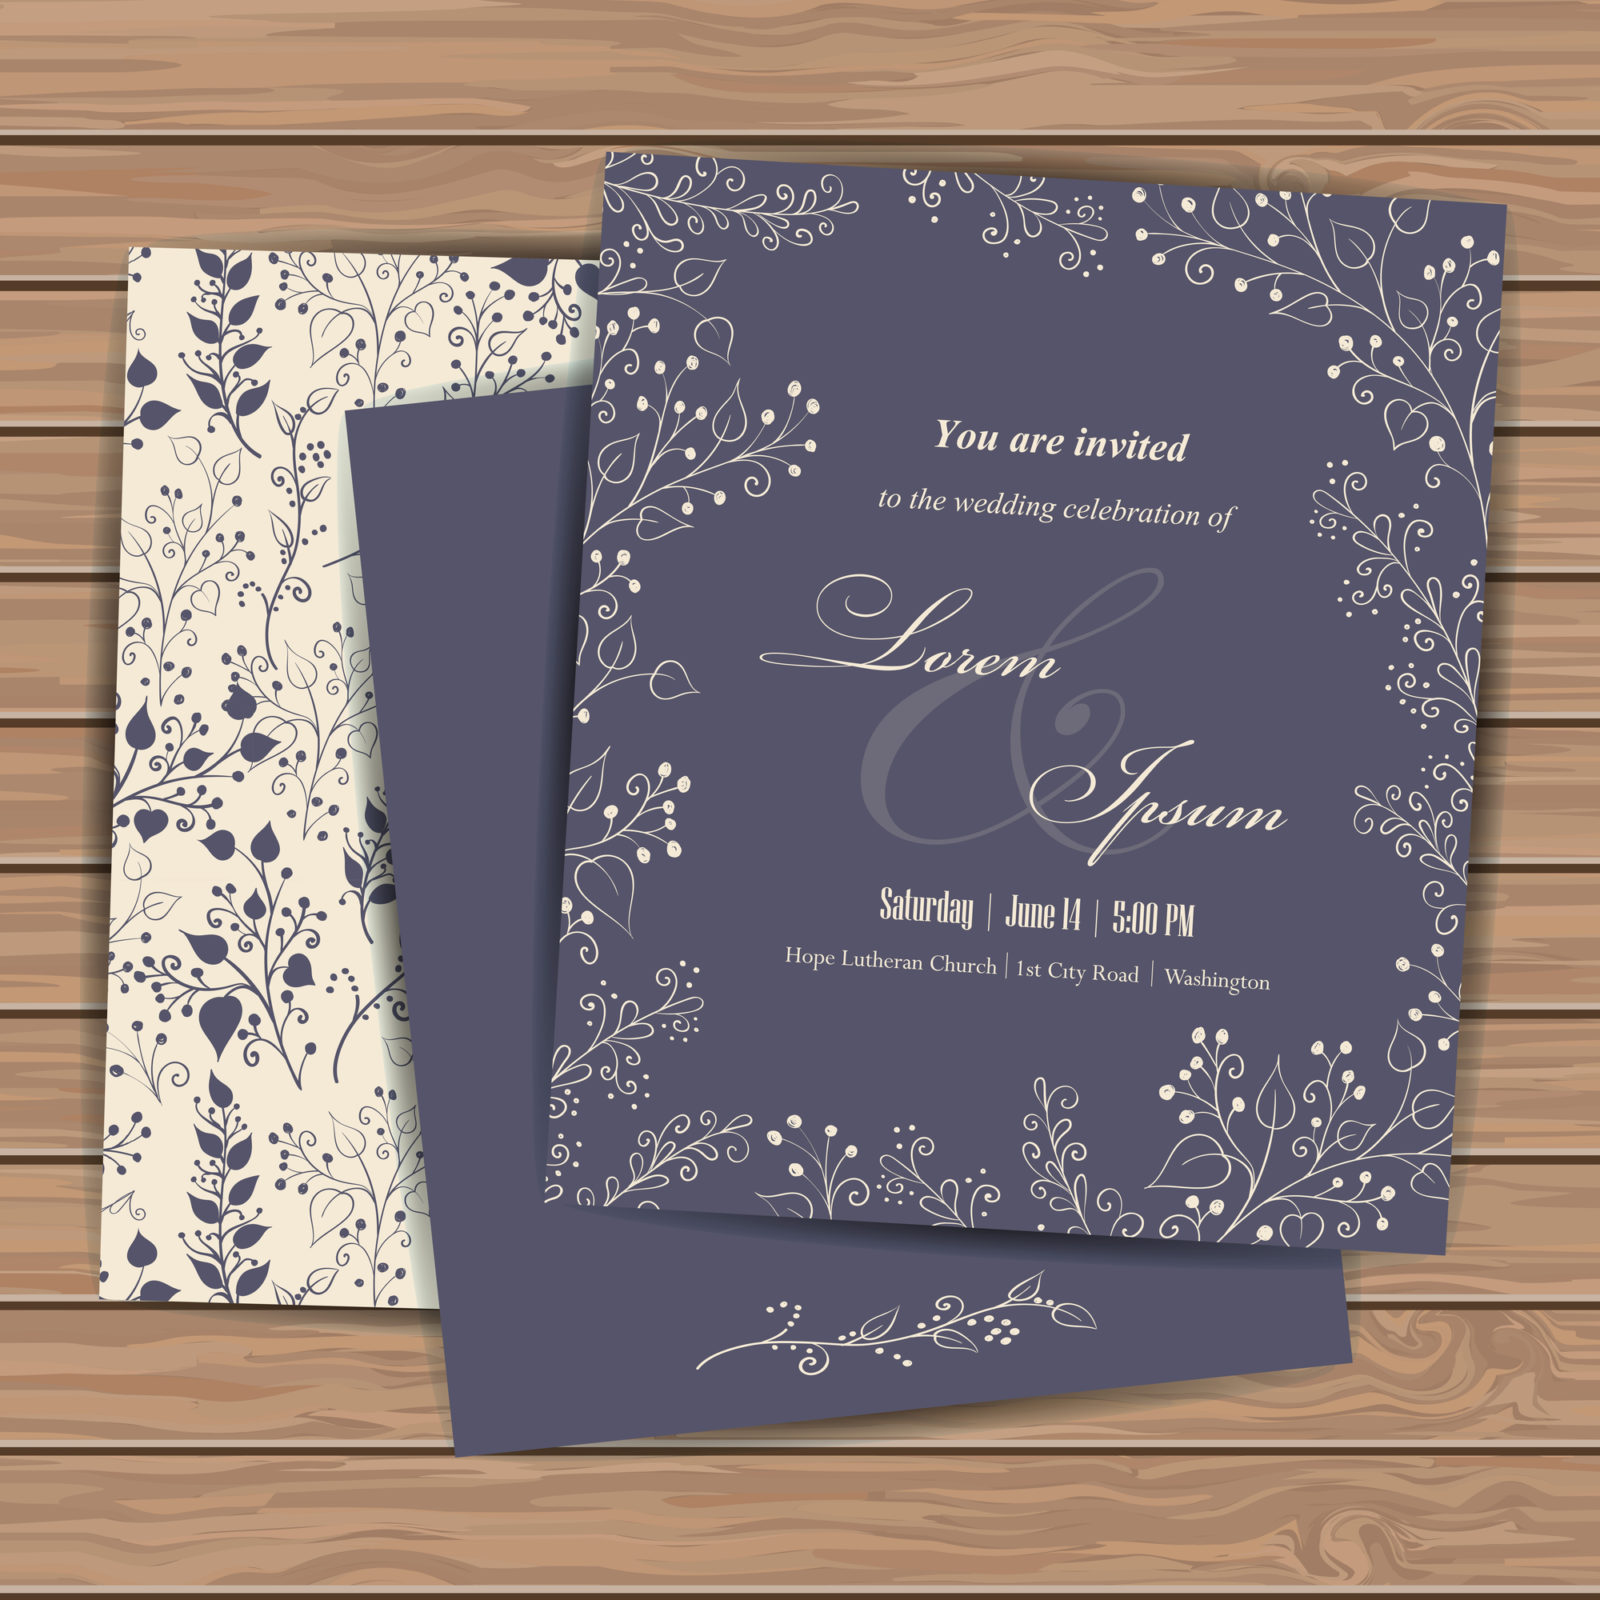 Crafting a Memorable Invitation